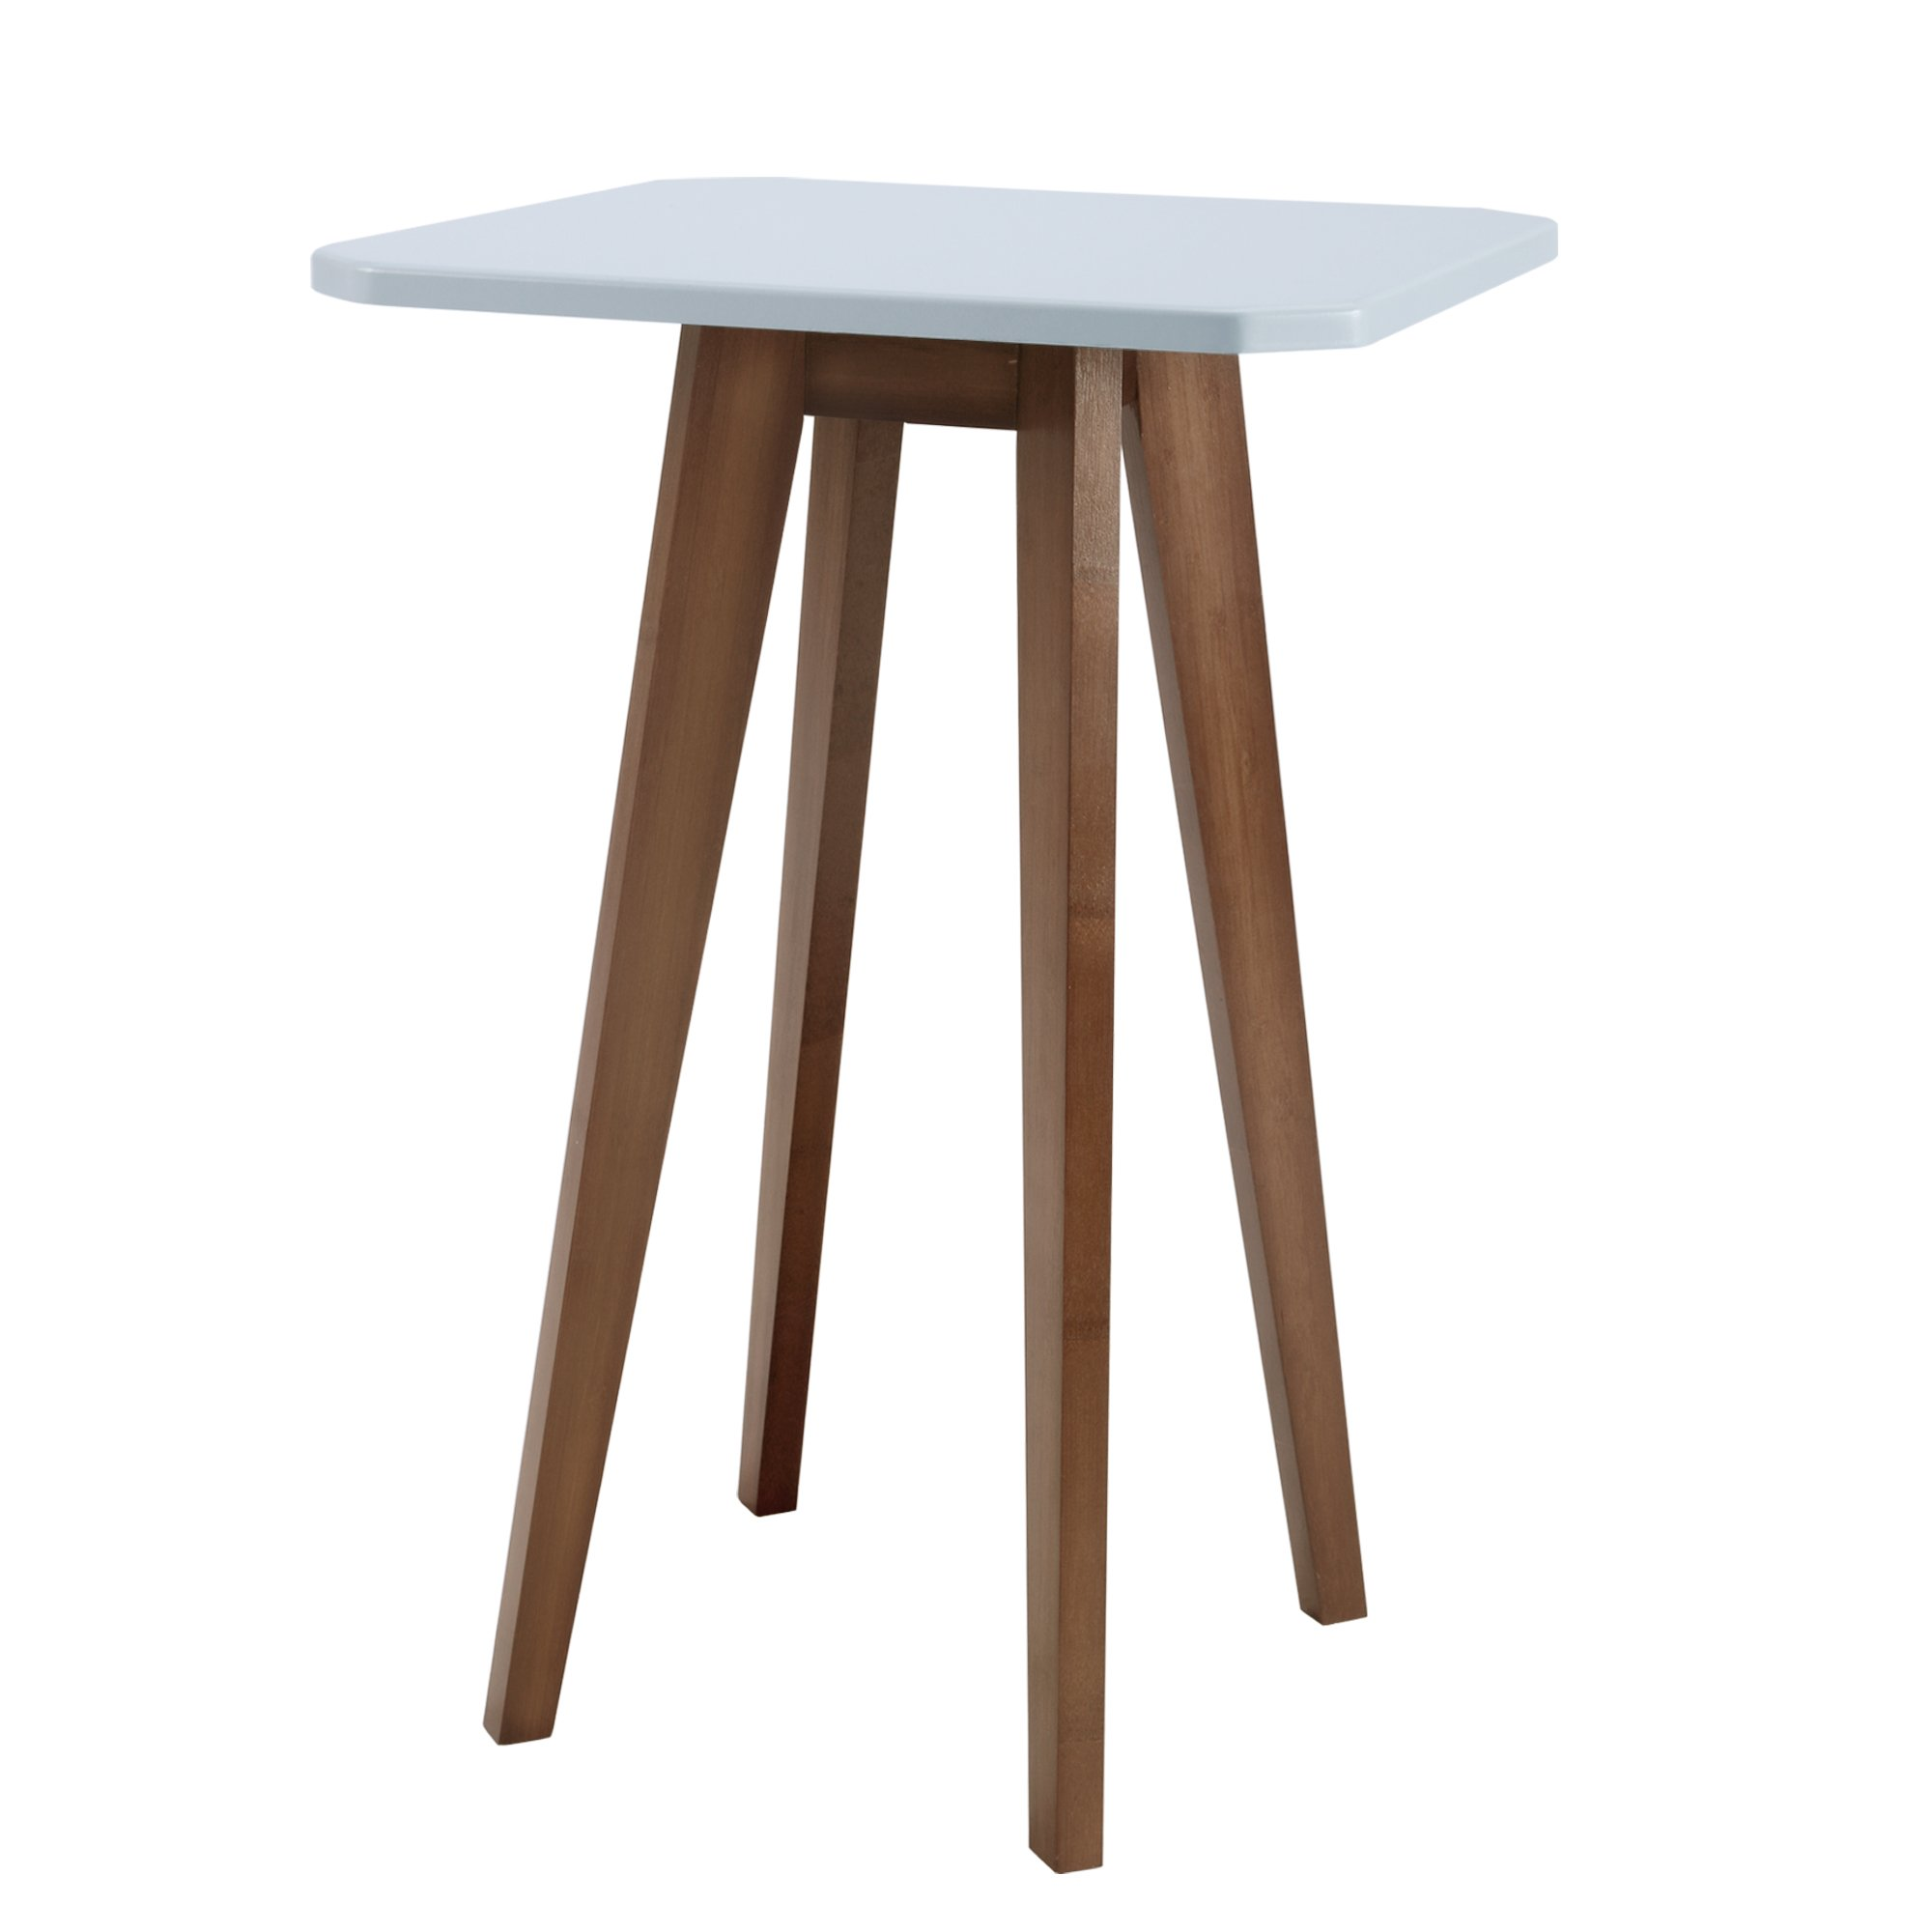 WILSHINE Square Accent Table for Small Spaces in Living Room/Bedroom with Greyish White Top and 4 Natural Brown legs